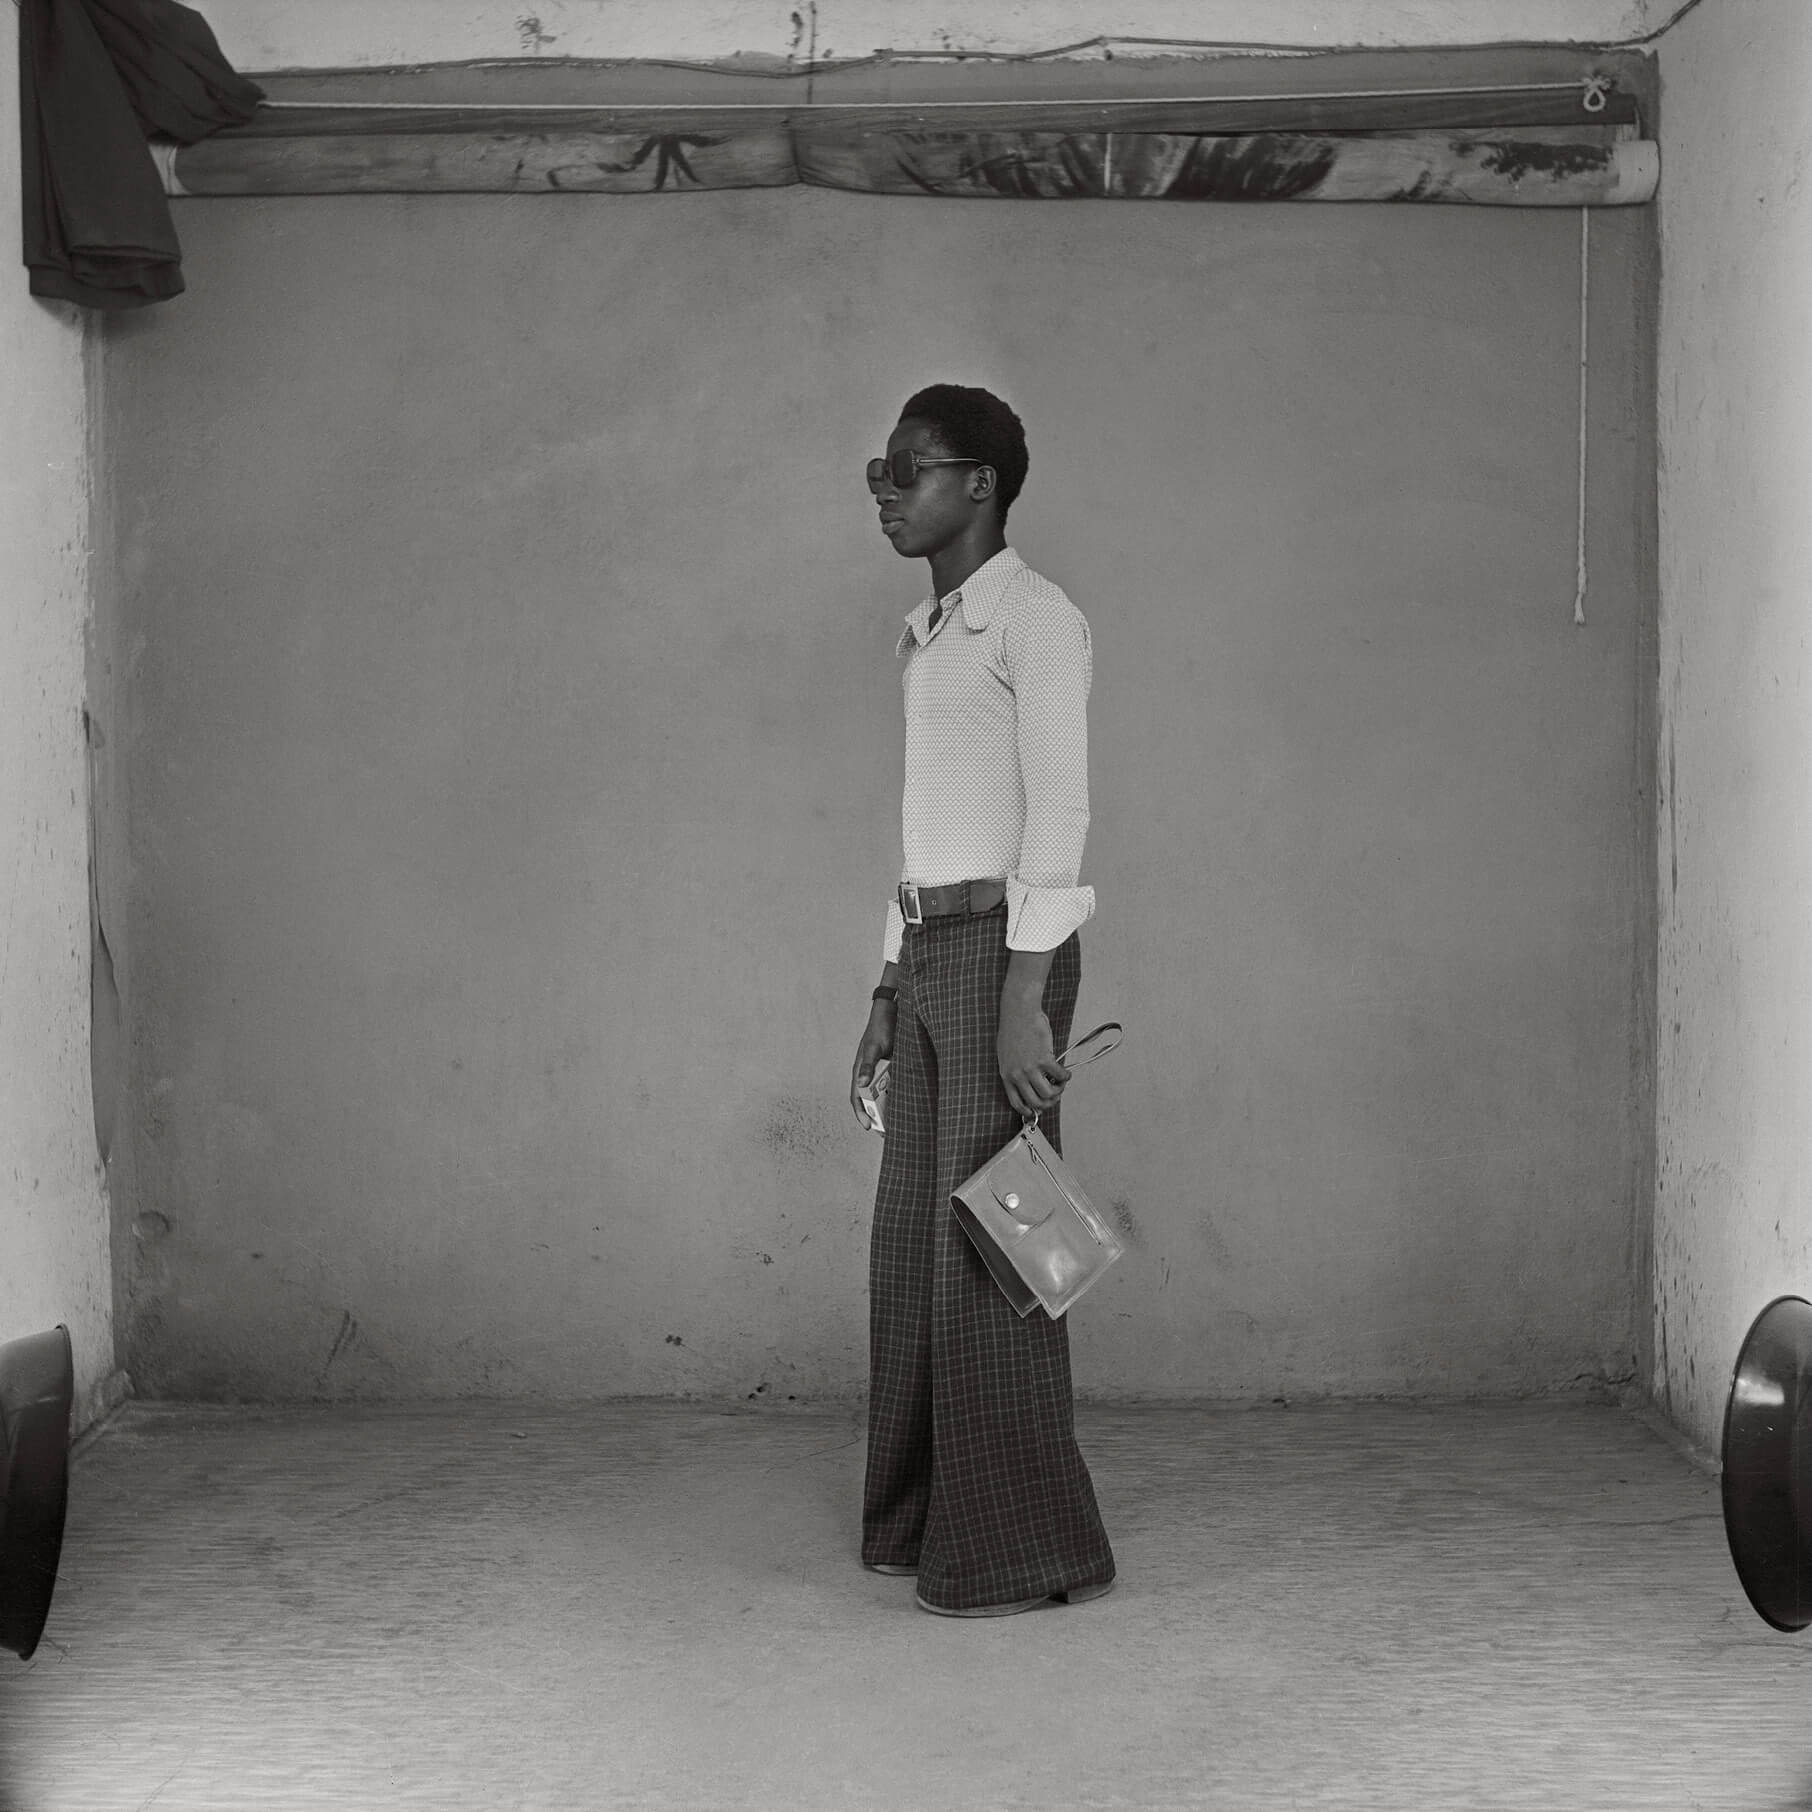 MASSES Magazine No. 4 – Sape de Ségou, Mali, 1973-1975; Photography by Adama Kouyaté – 2014